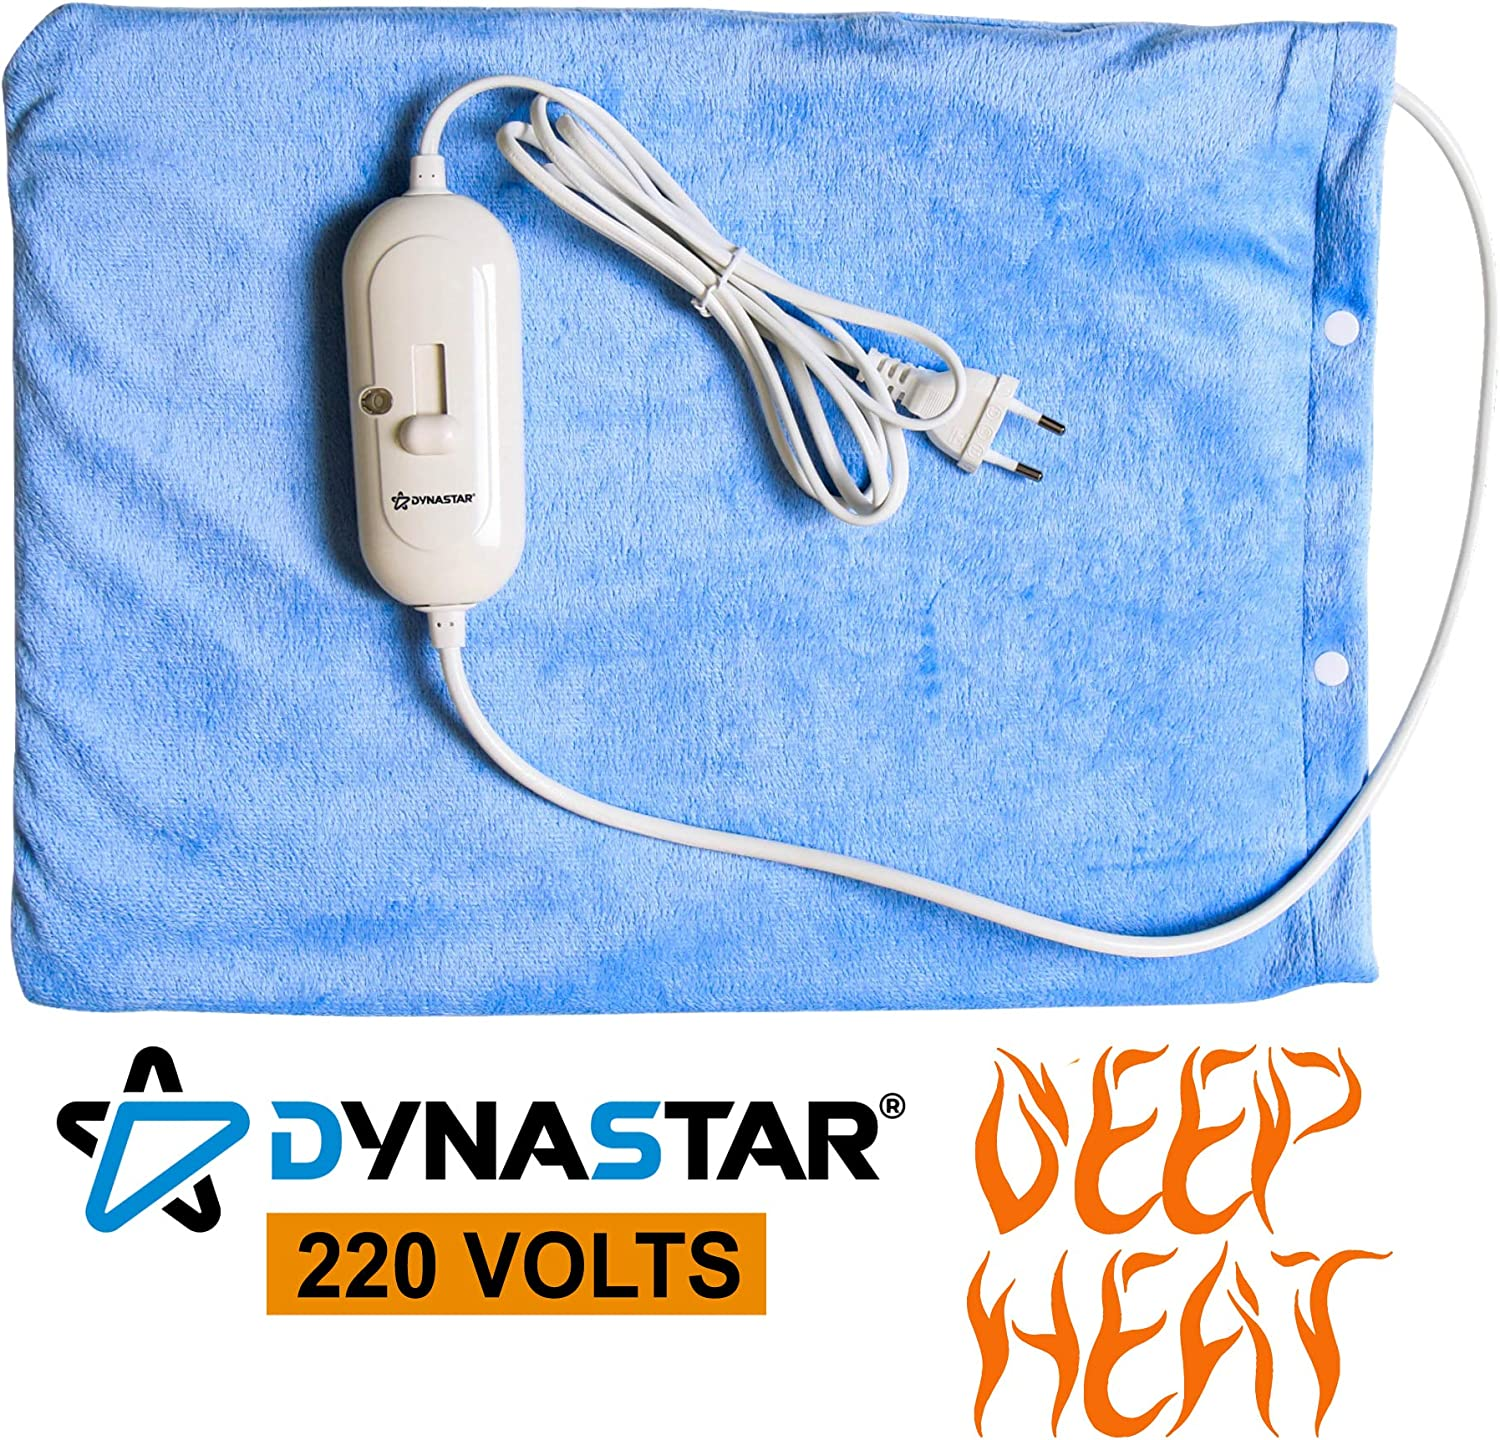 Dynastar 220 Volts Heating Pad 220v 240 Volt Heating pad with Moist/Dry, Fast Heating, Micro Fleece Soft Removable Washable Cover, (Will NOT Work in USA)